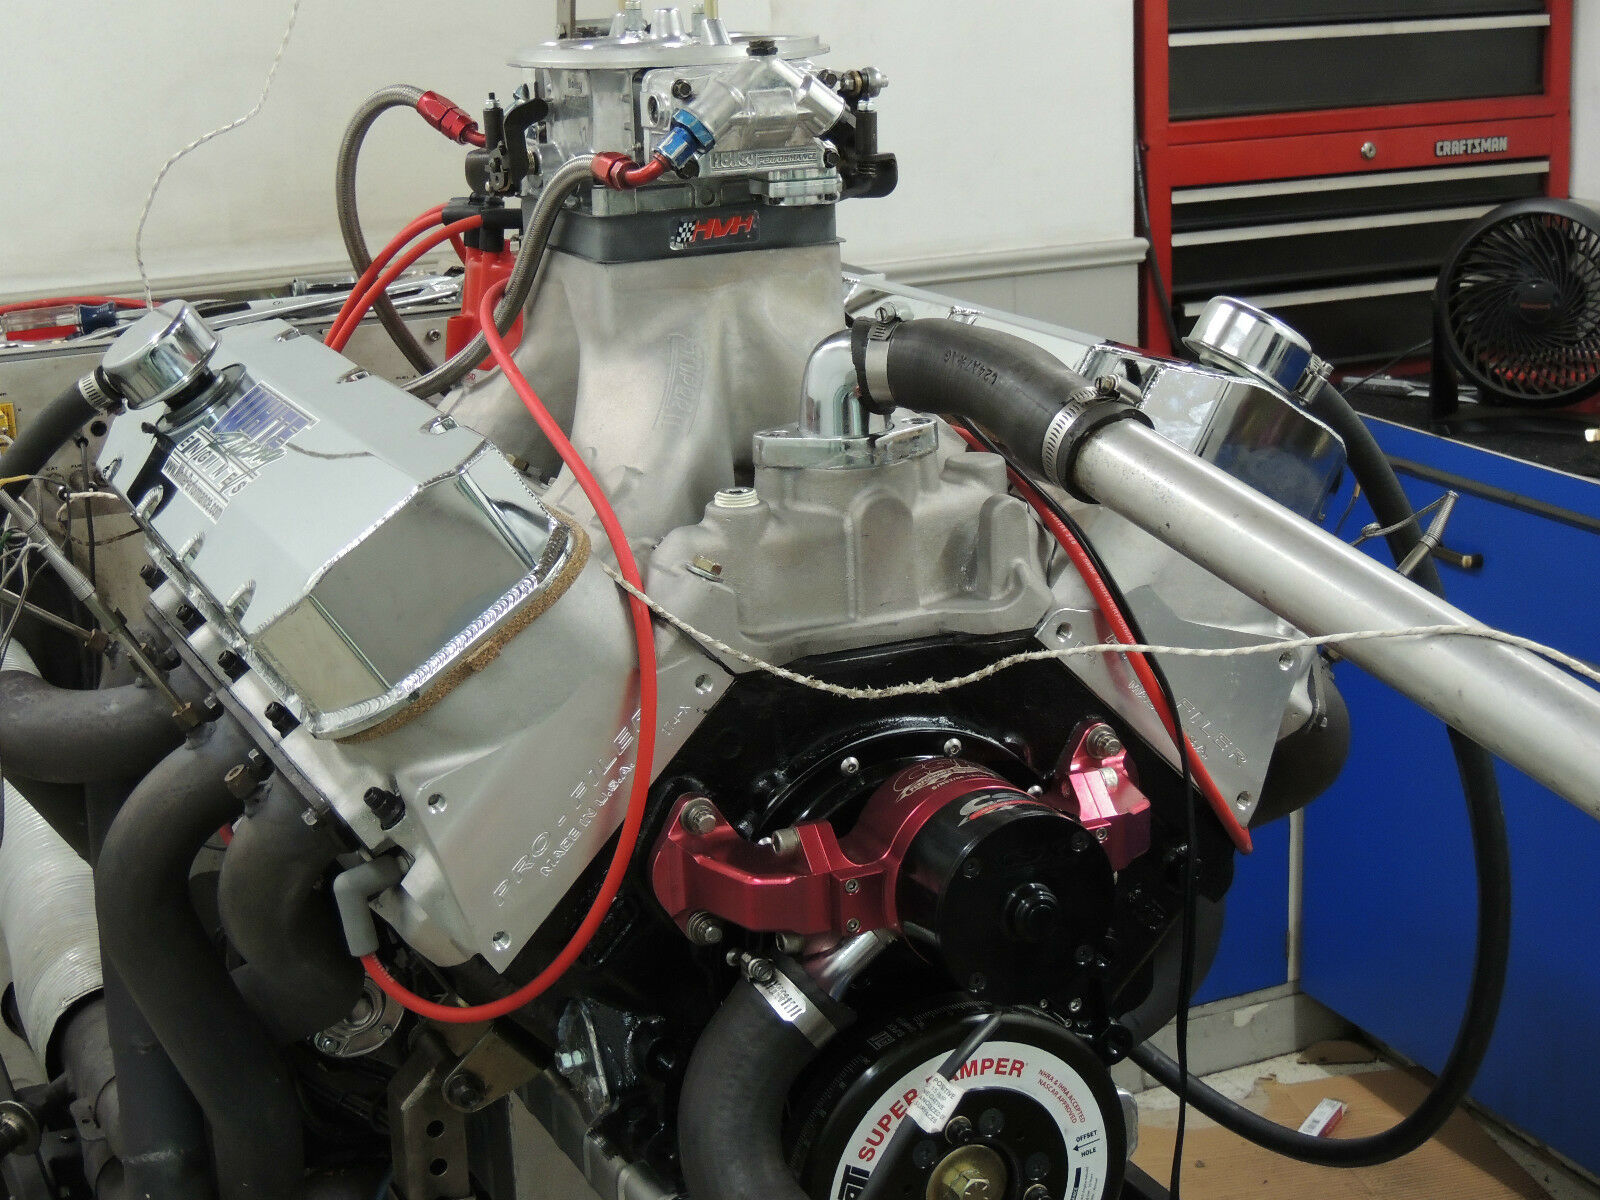 Bbc 632 cubic inch stroker engine 825hp brodix head long block 105 resntentobalflowflowcomponenttechnicalissues malvernweather Image collections